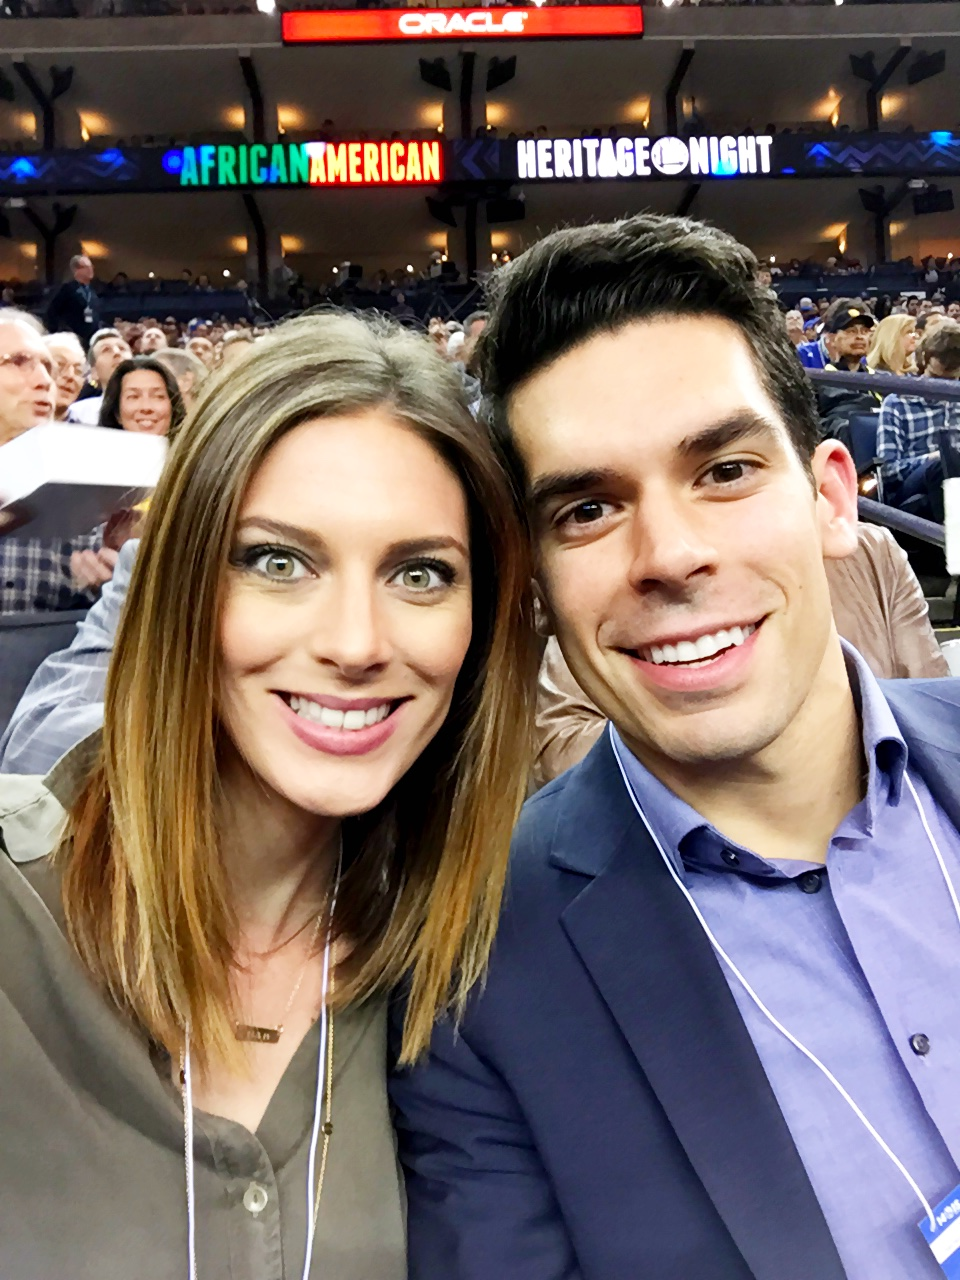 Date Night: Warriors Game | Four Threads